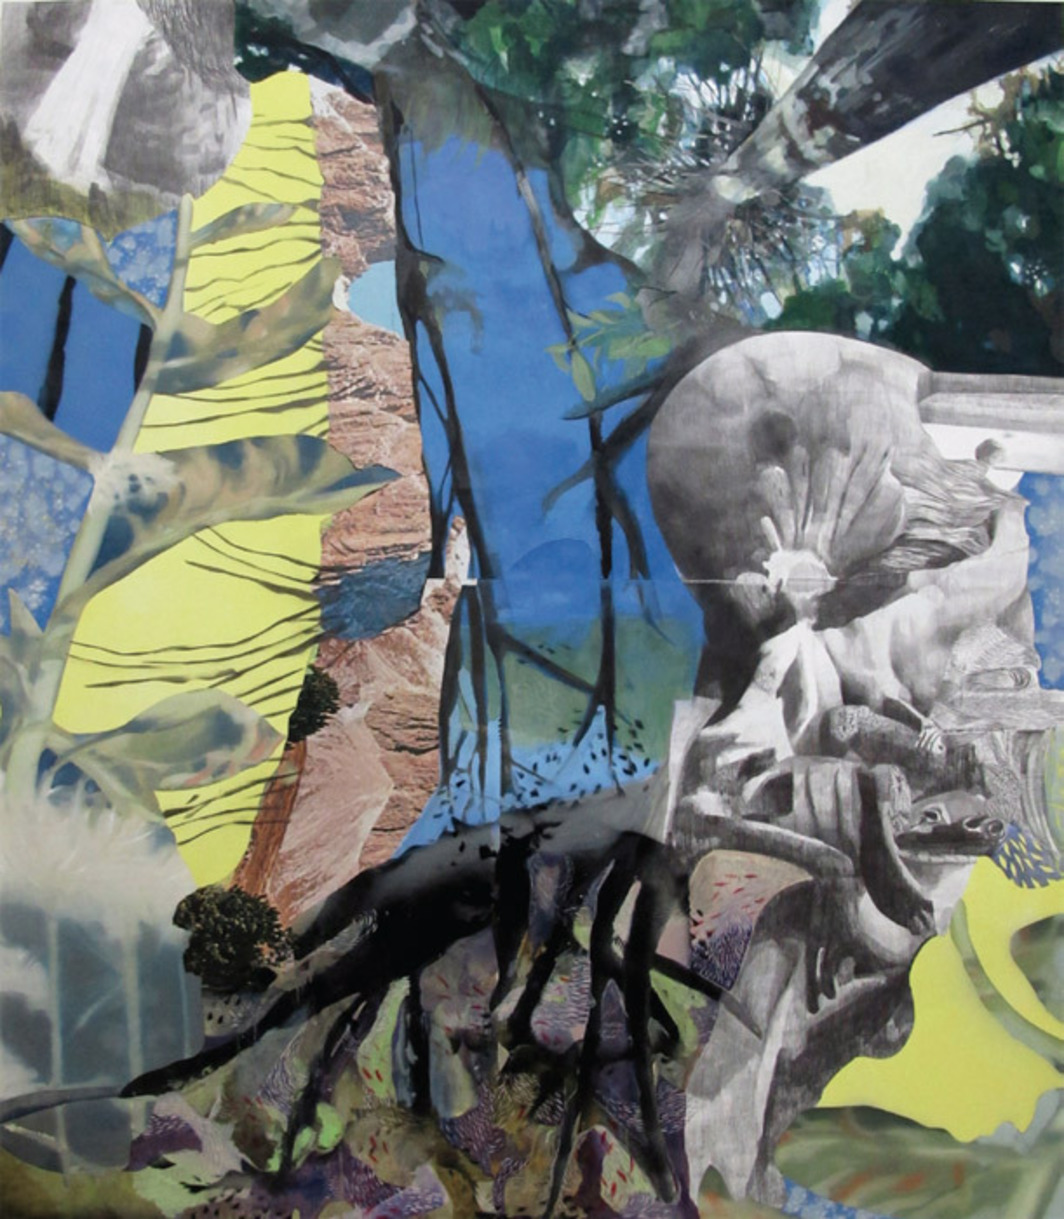 "Alessandro Roma, Il sole mi costrinse ad abbandonare il giardino (The Sun Forced Me to Abandon the Garden), 2011, oil, spray, graphite, and collage on canvas, 82 5/8 x 70 7/8""."